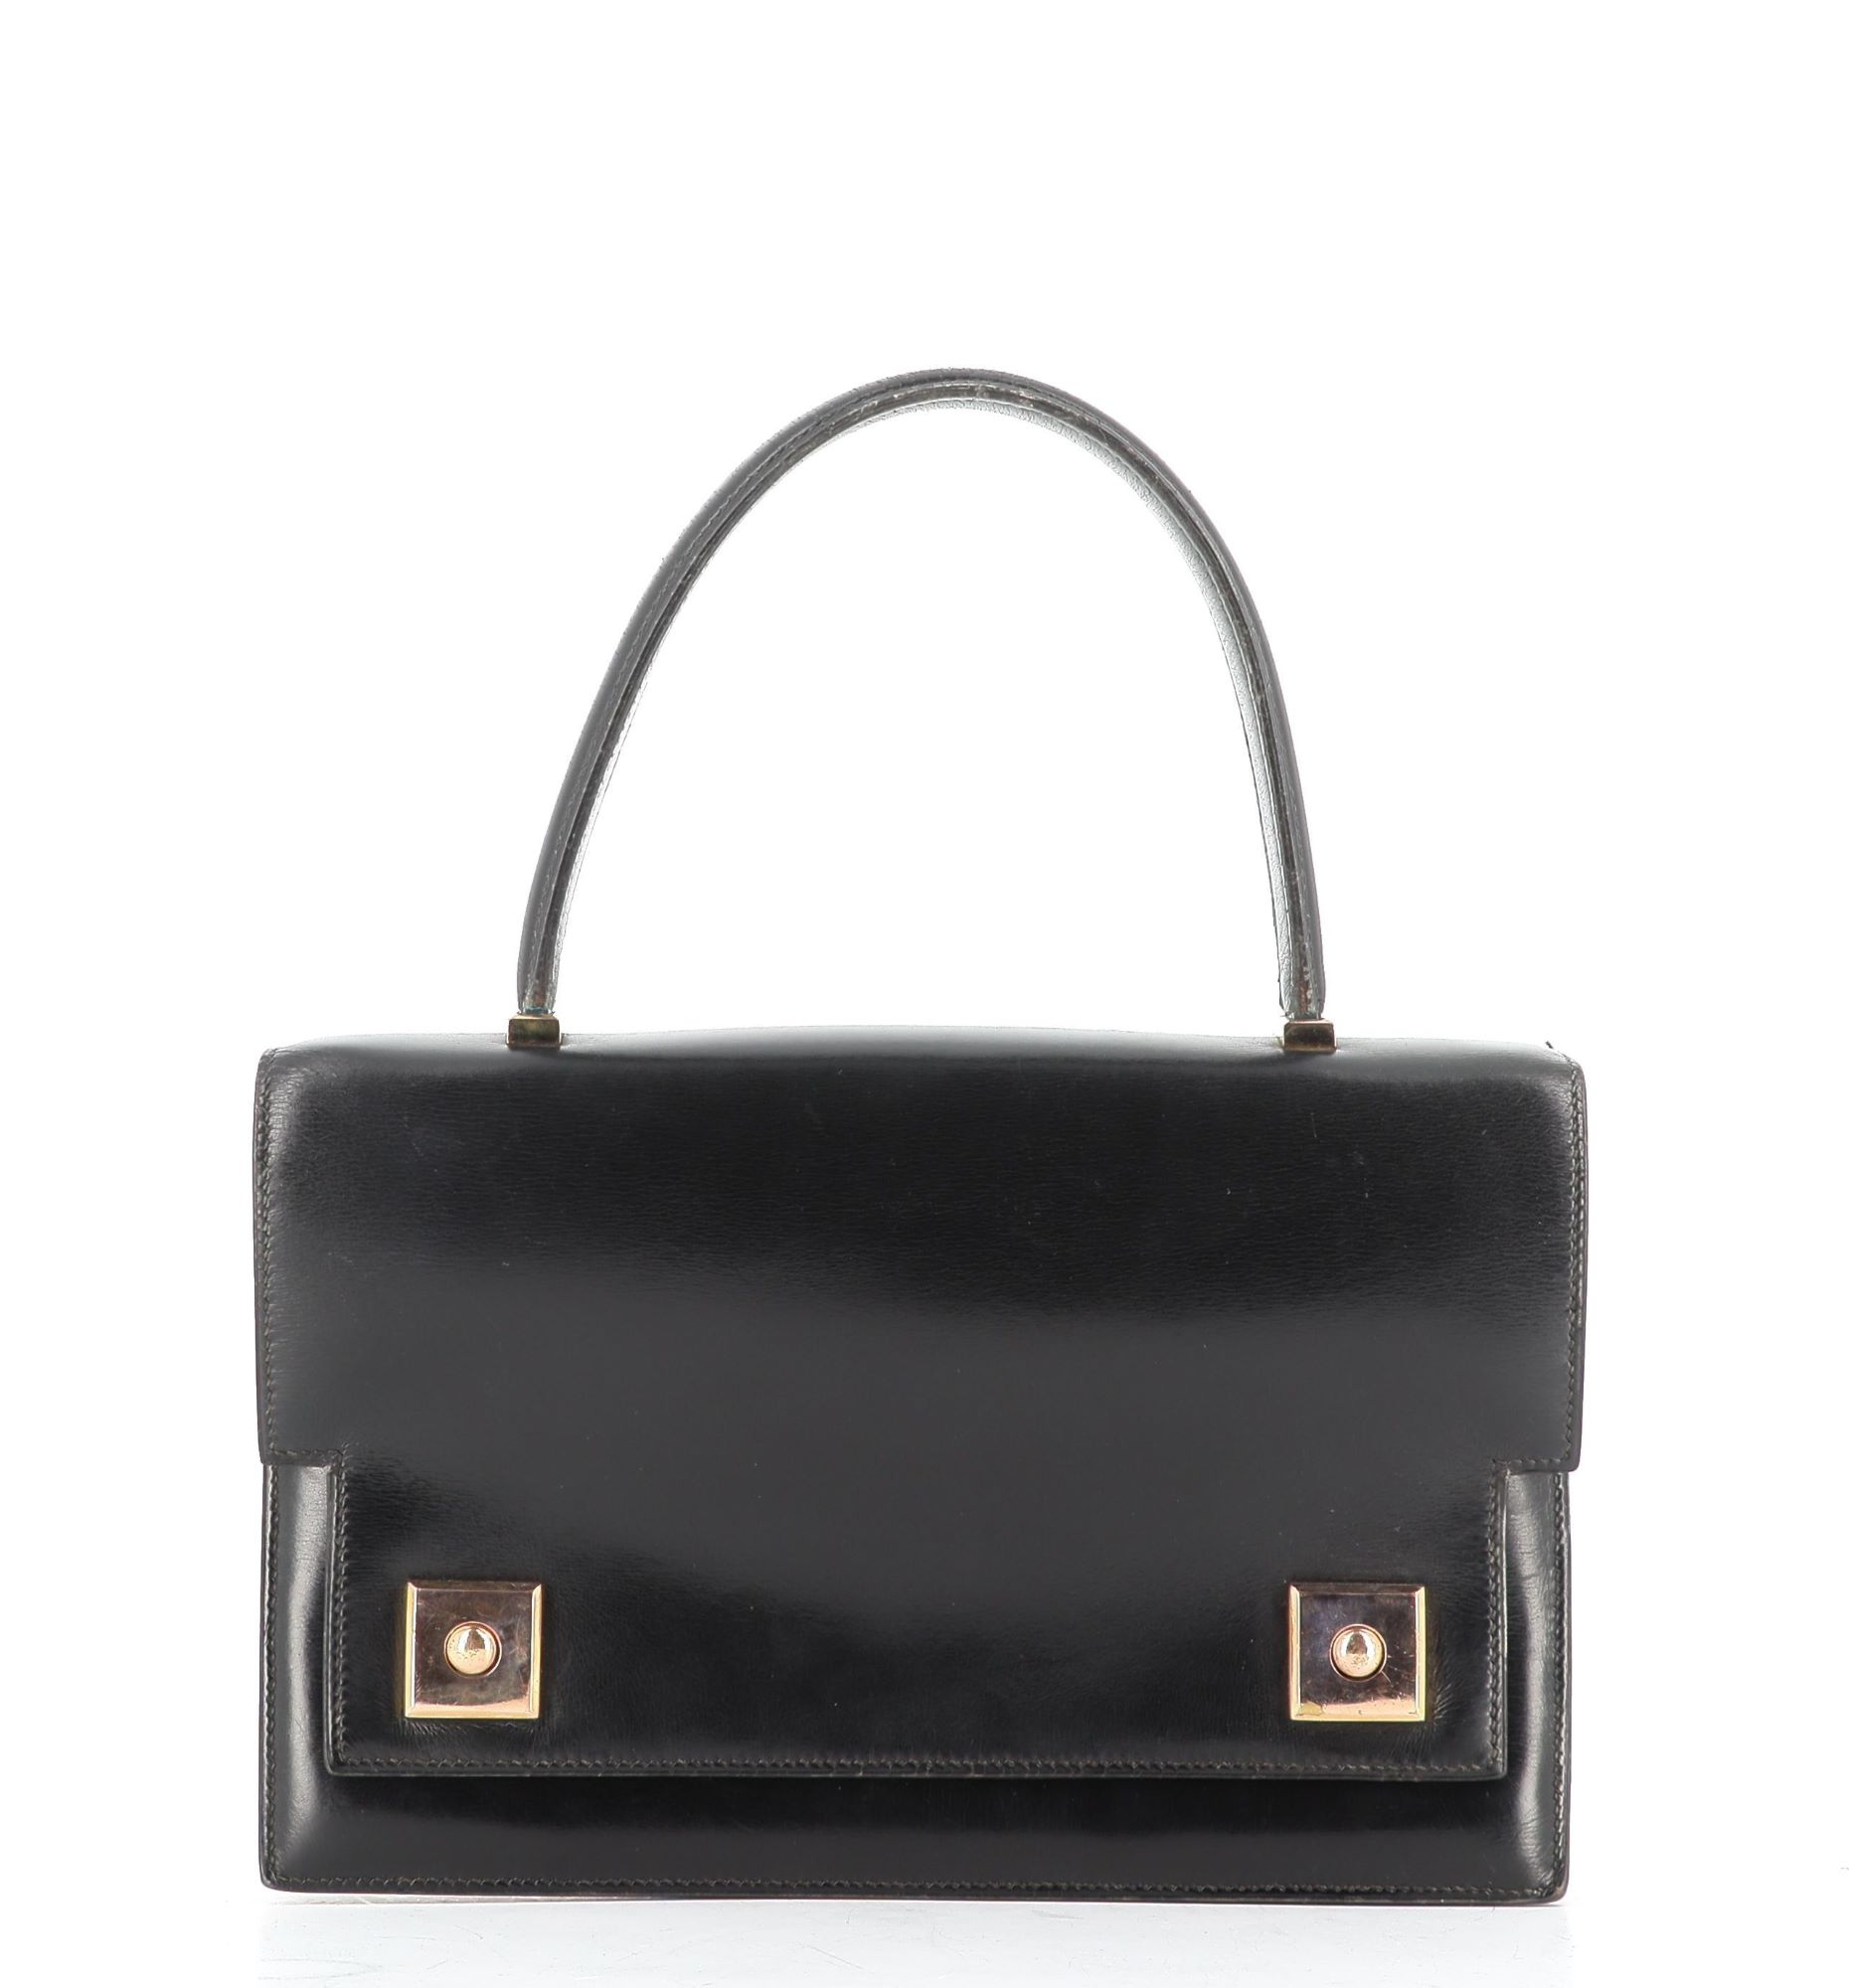 A black purse with a handle  Description automatically generated with low confidence